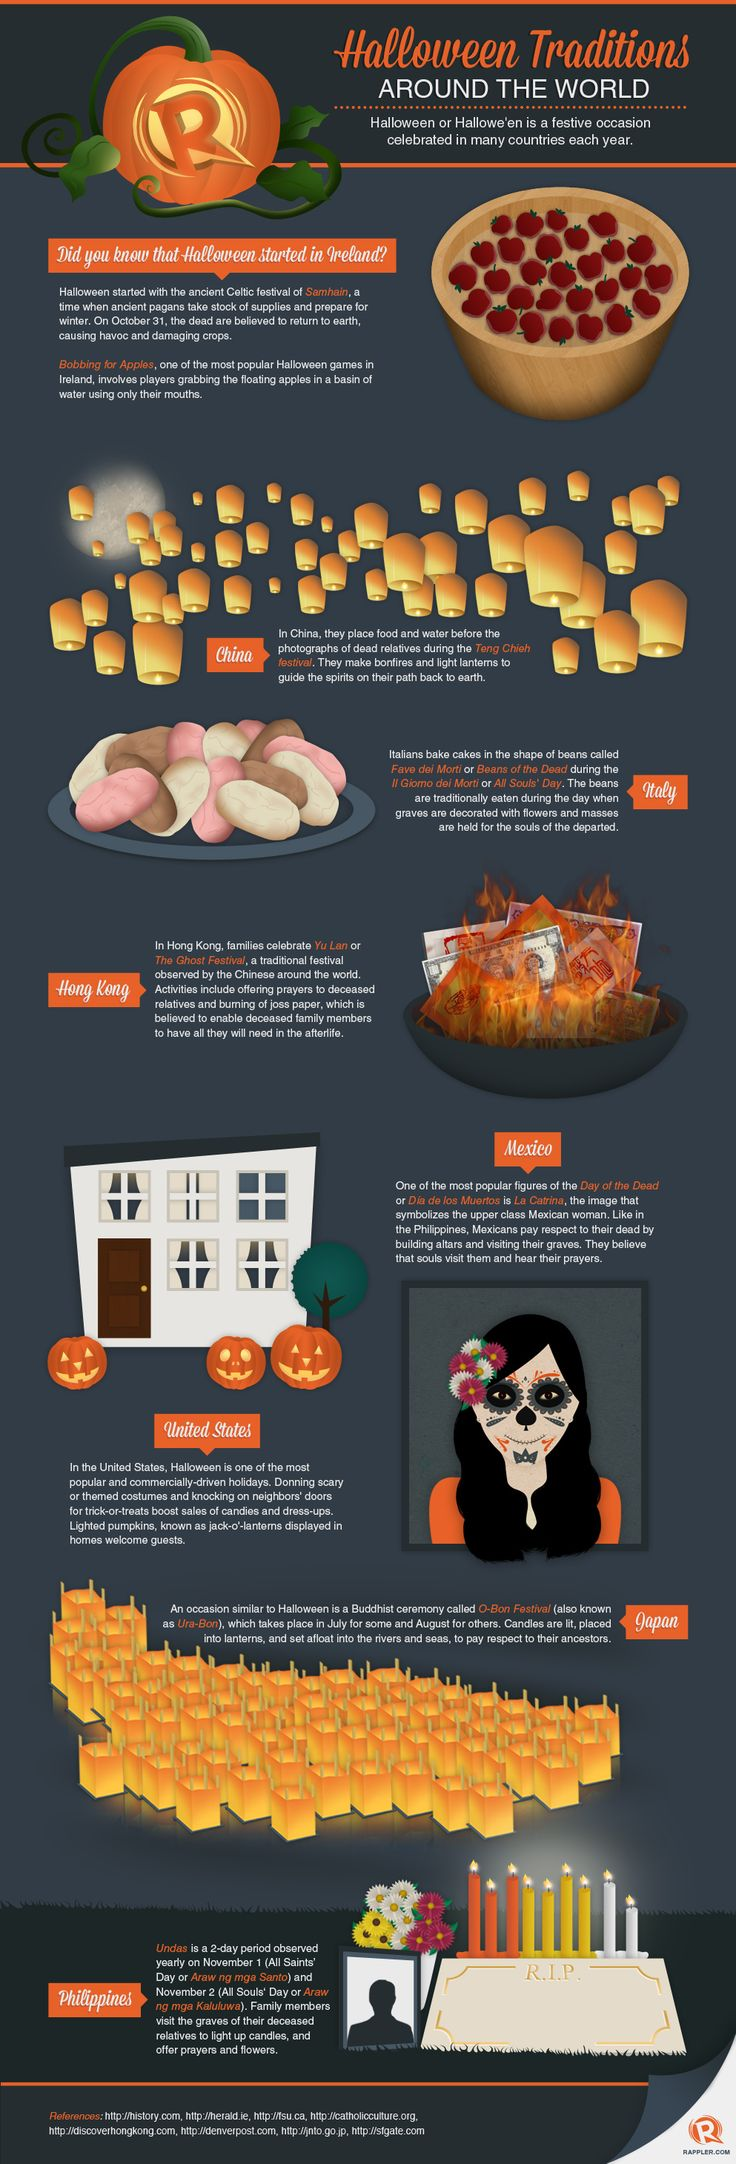 Halloween traditions around the world #halloween #infographic